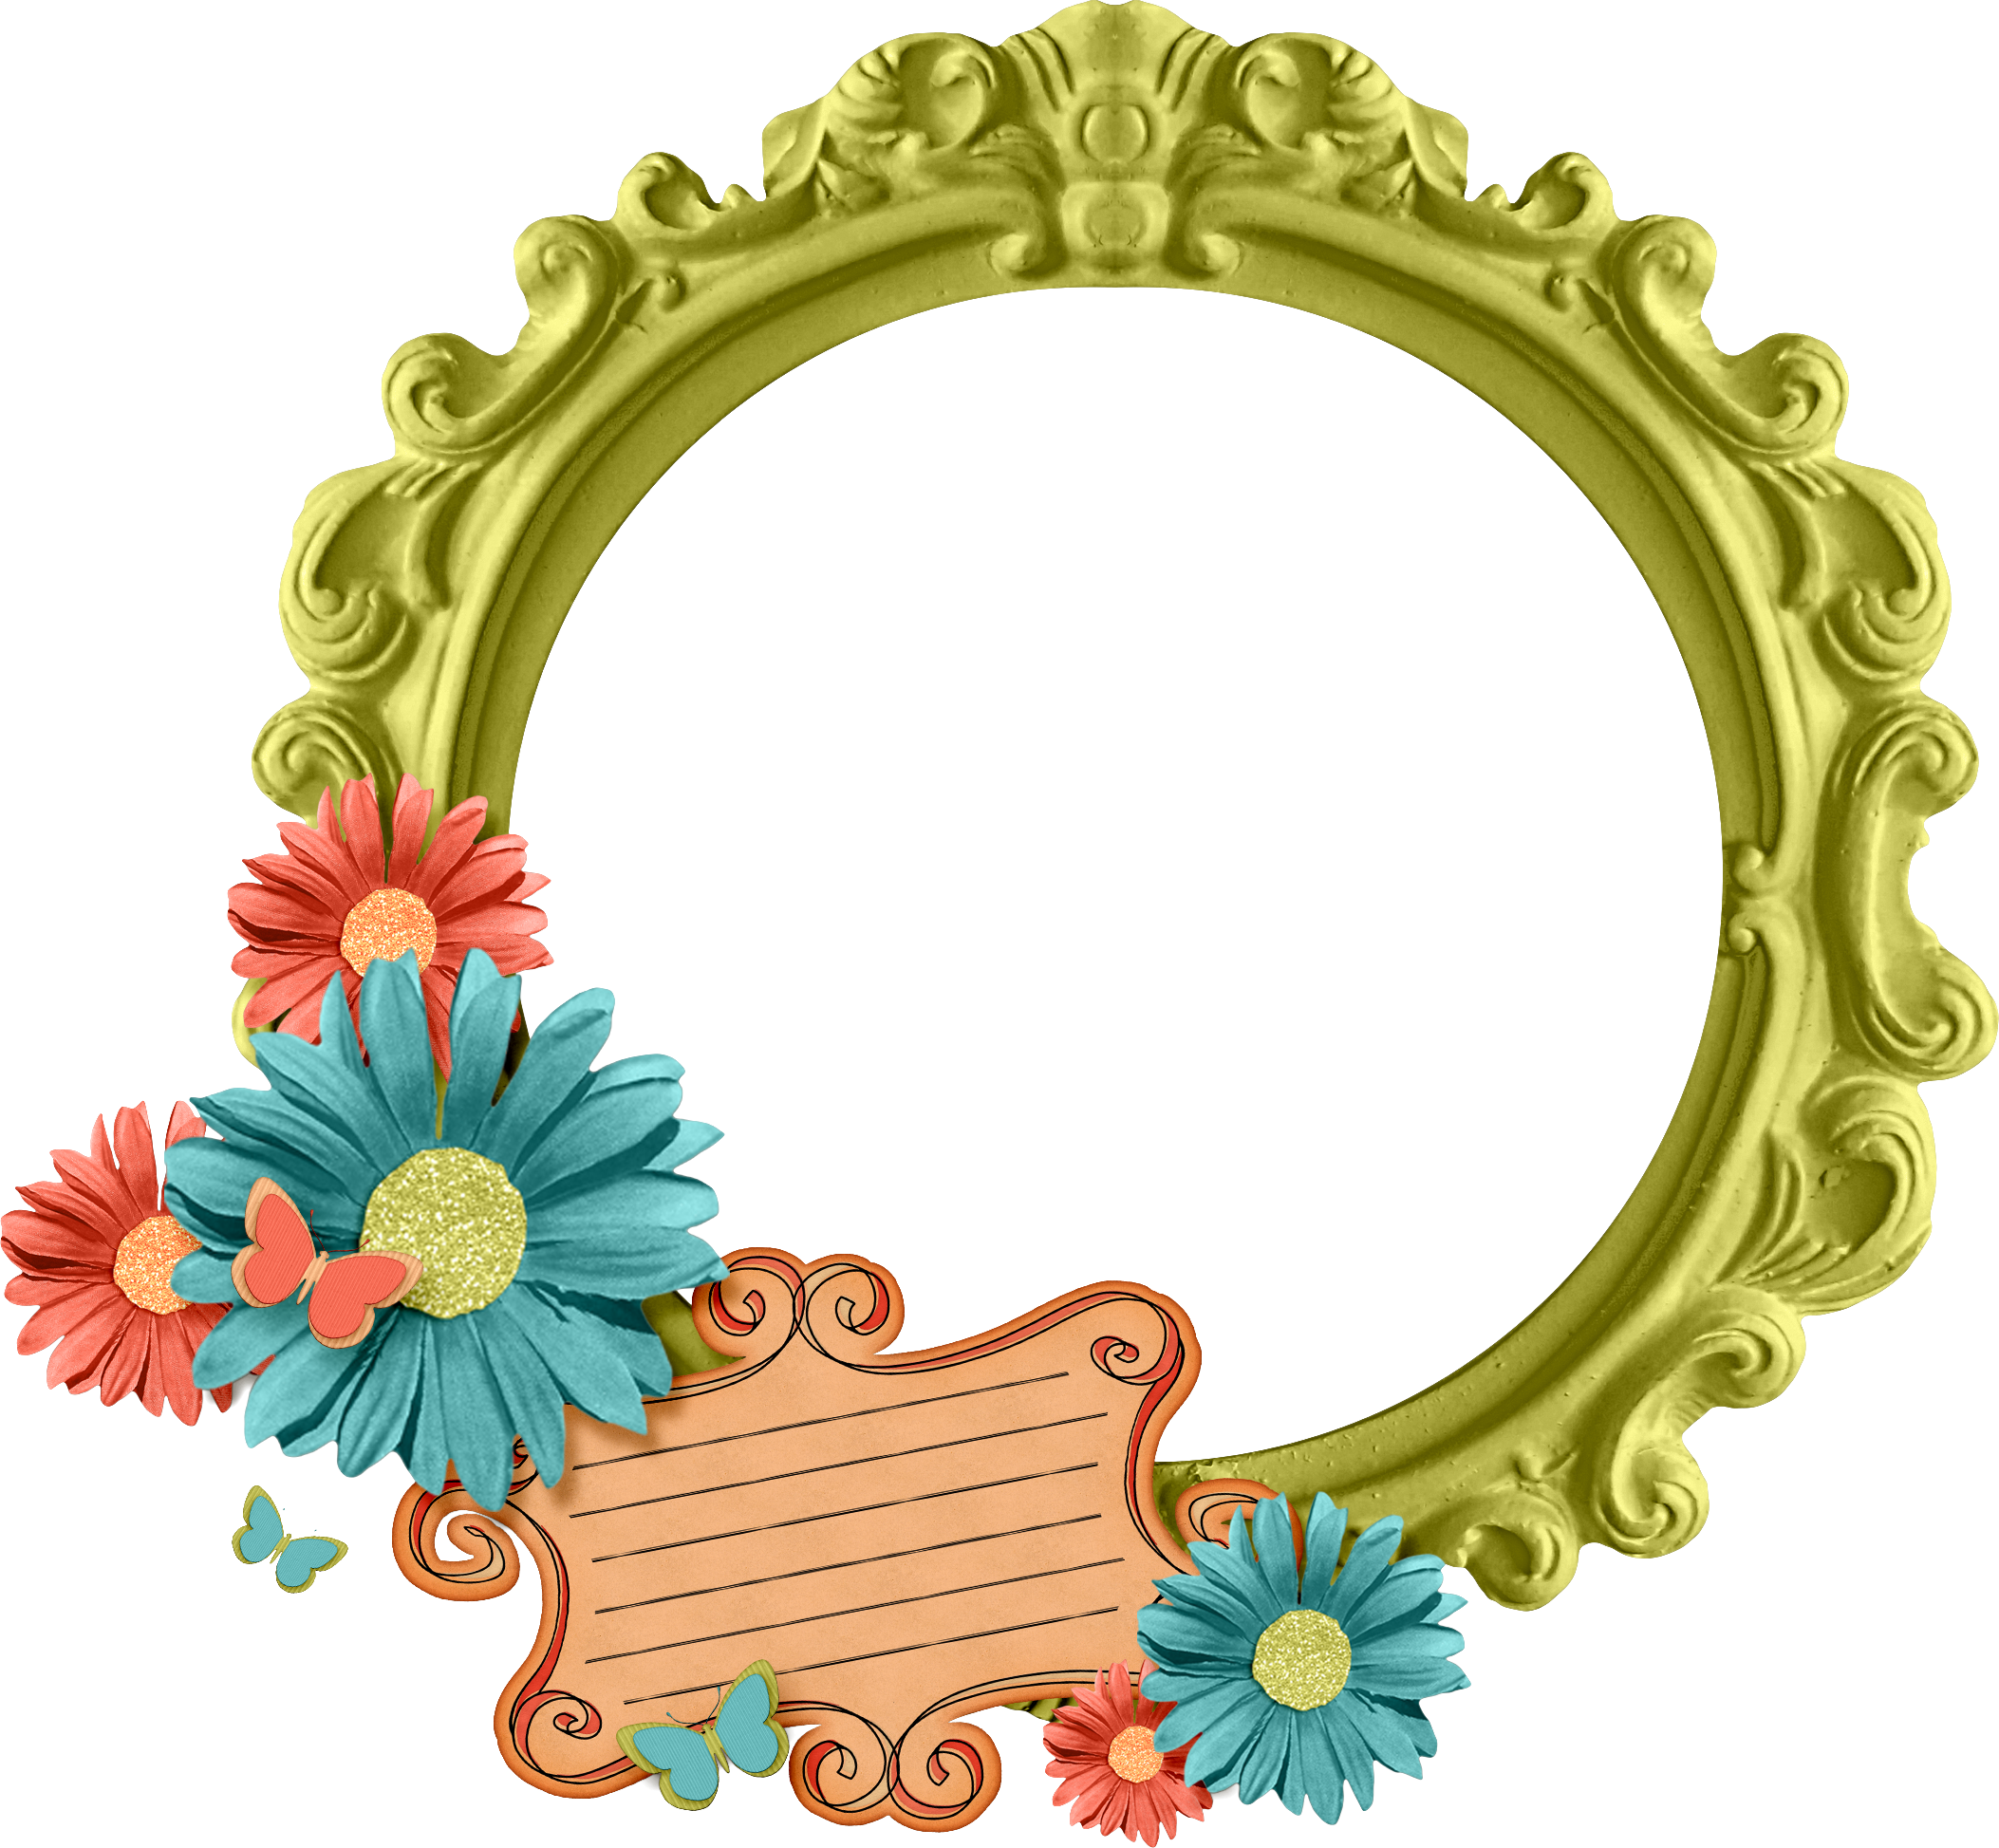 Free to use thanksgiving psp clipart picture transparent stock Pin by Cheryl Lynn Kiebler on PSP Frames | Pinterest | Psp picture transparent stock